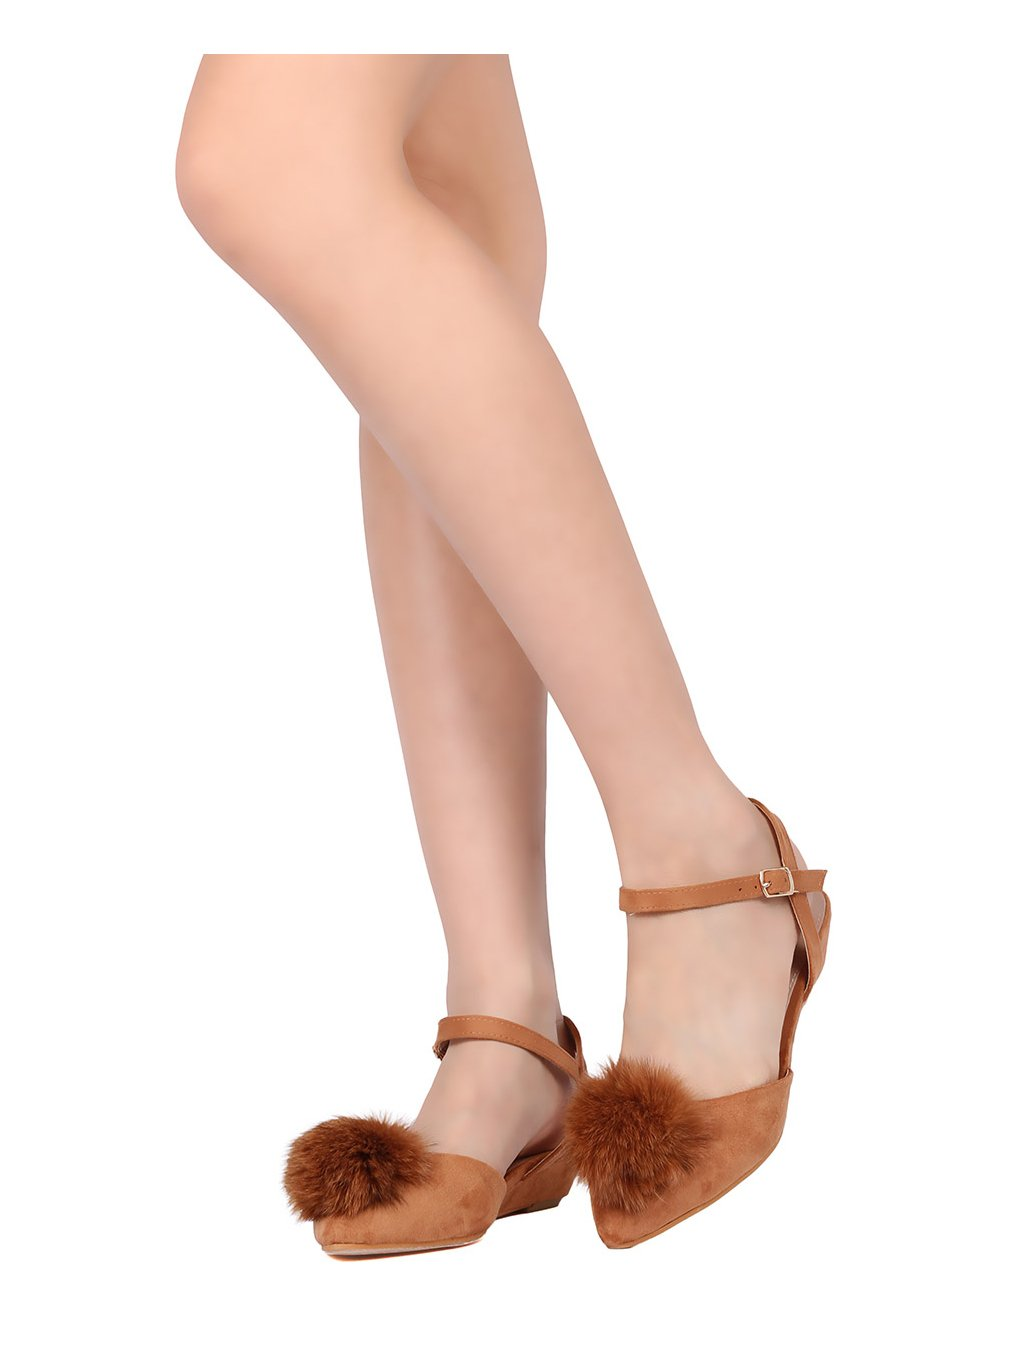 DbDk Women Mixed Media Pom Pom Dorsay Low Wedge Sandal GD39 B01N6YG0DC 8.5 M US|Camel